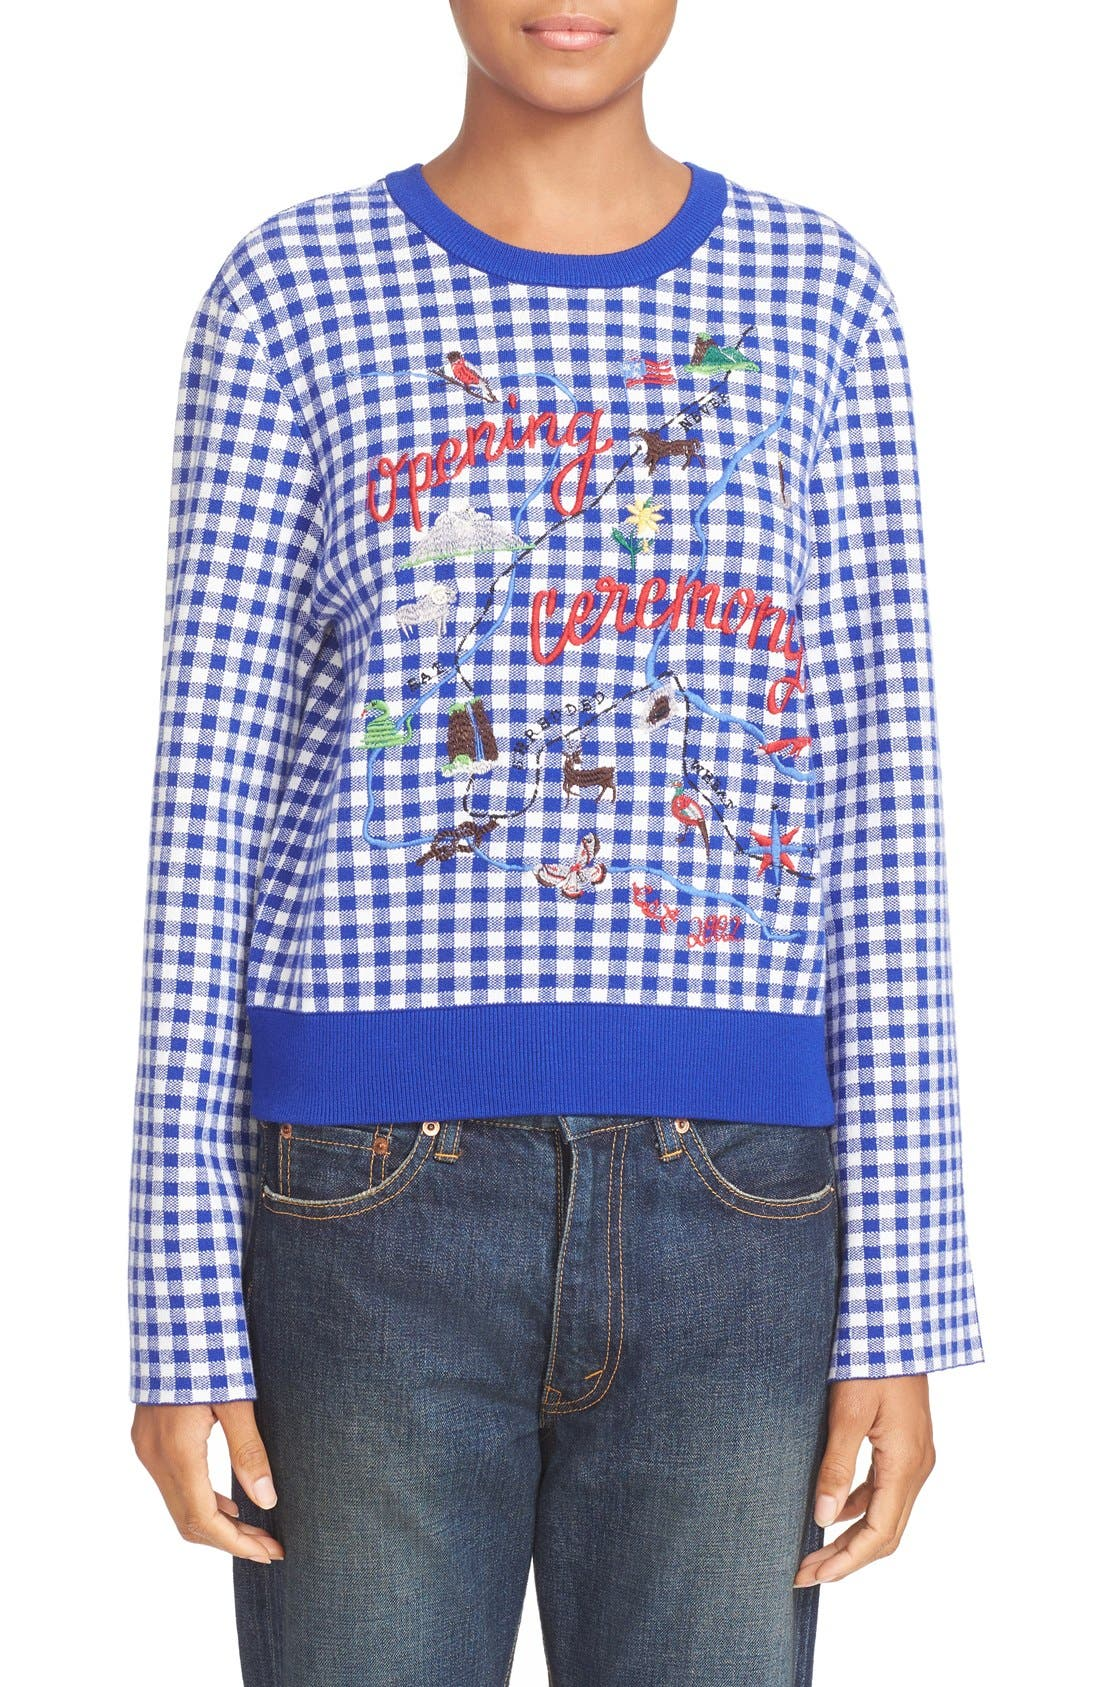 Alternate Image 1 Selected - Opening Ceremony Embroidered Map Gingham Sweater